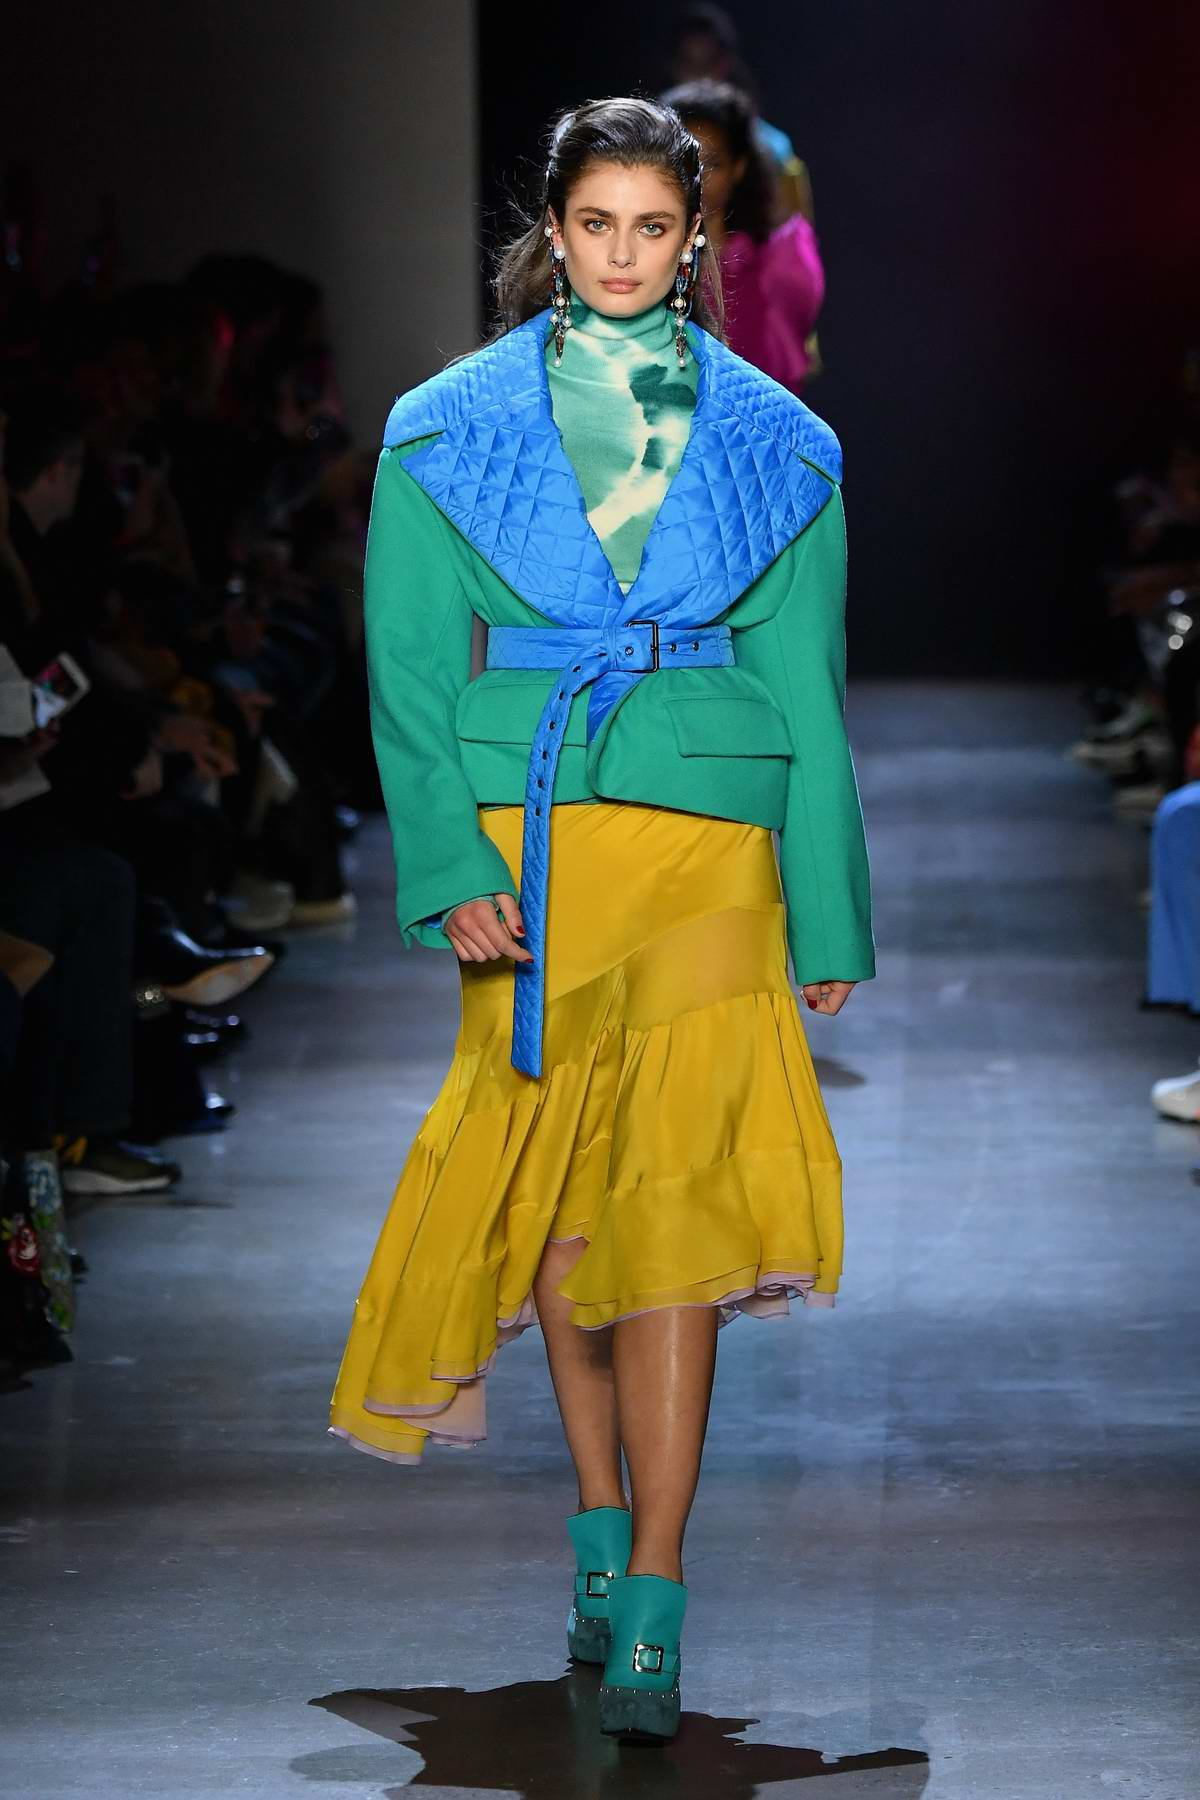 Taylor Hill walks the runway for the Prabal Gurung fashion show during New York Fashion Week in New York City